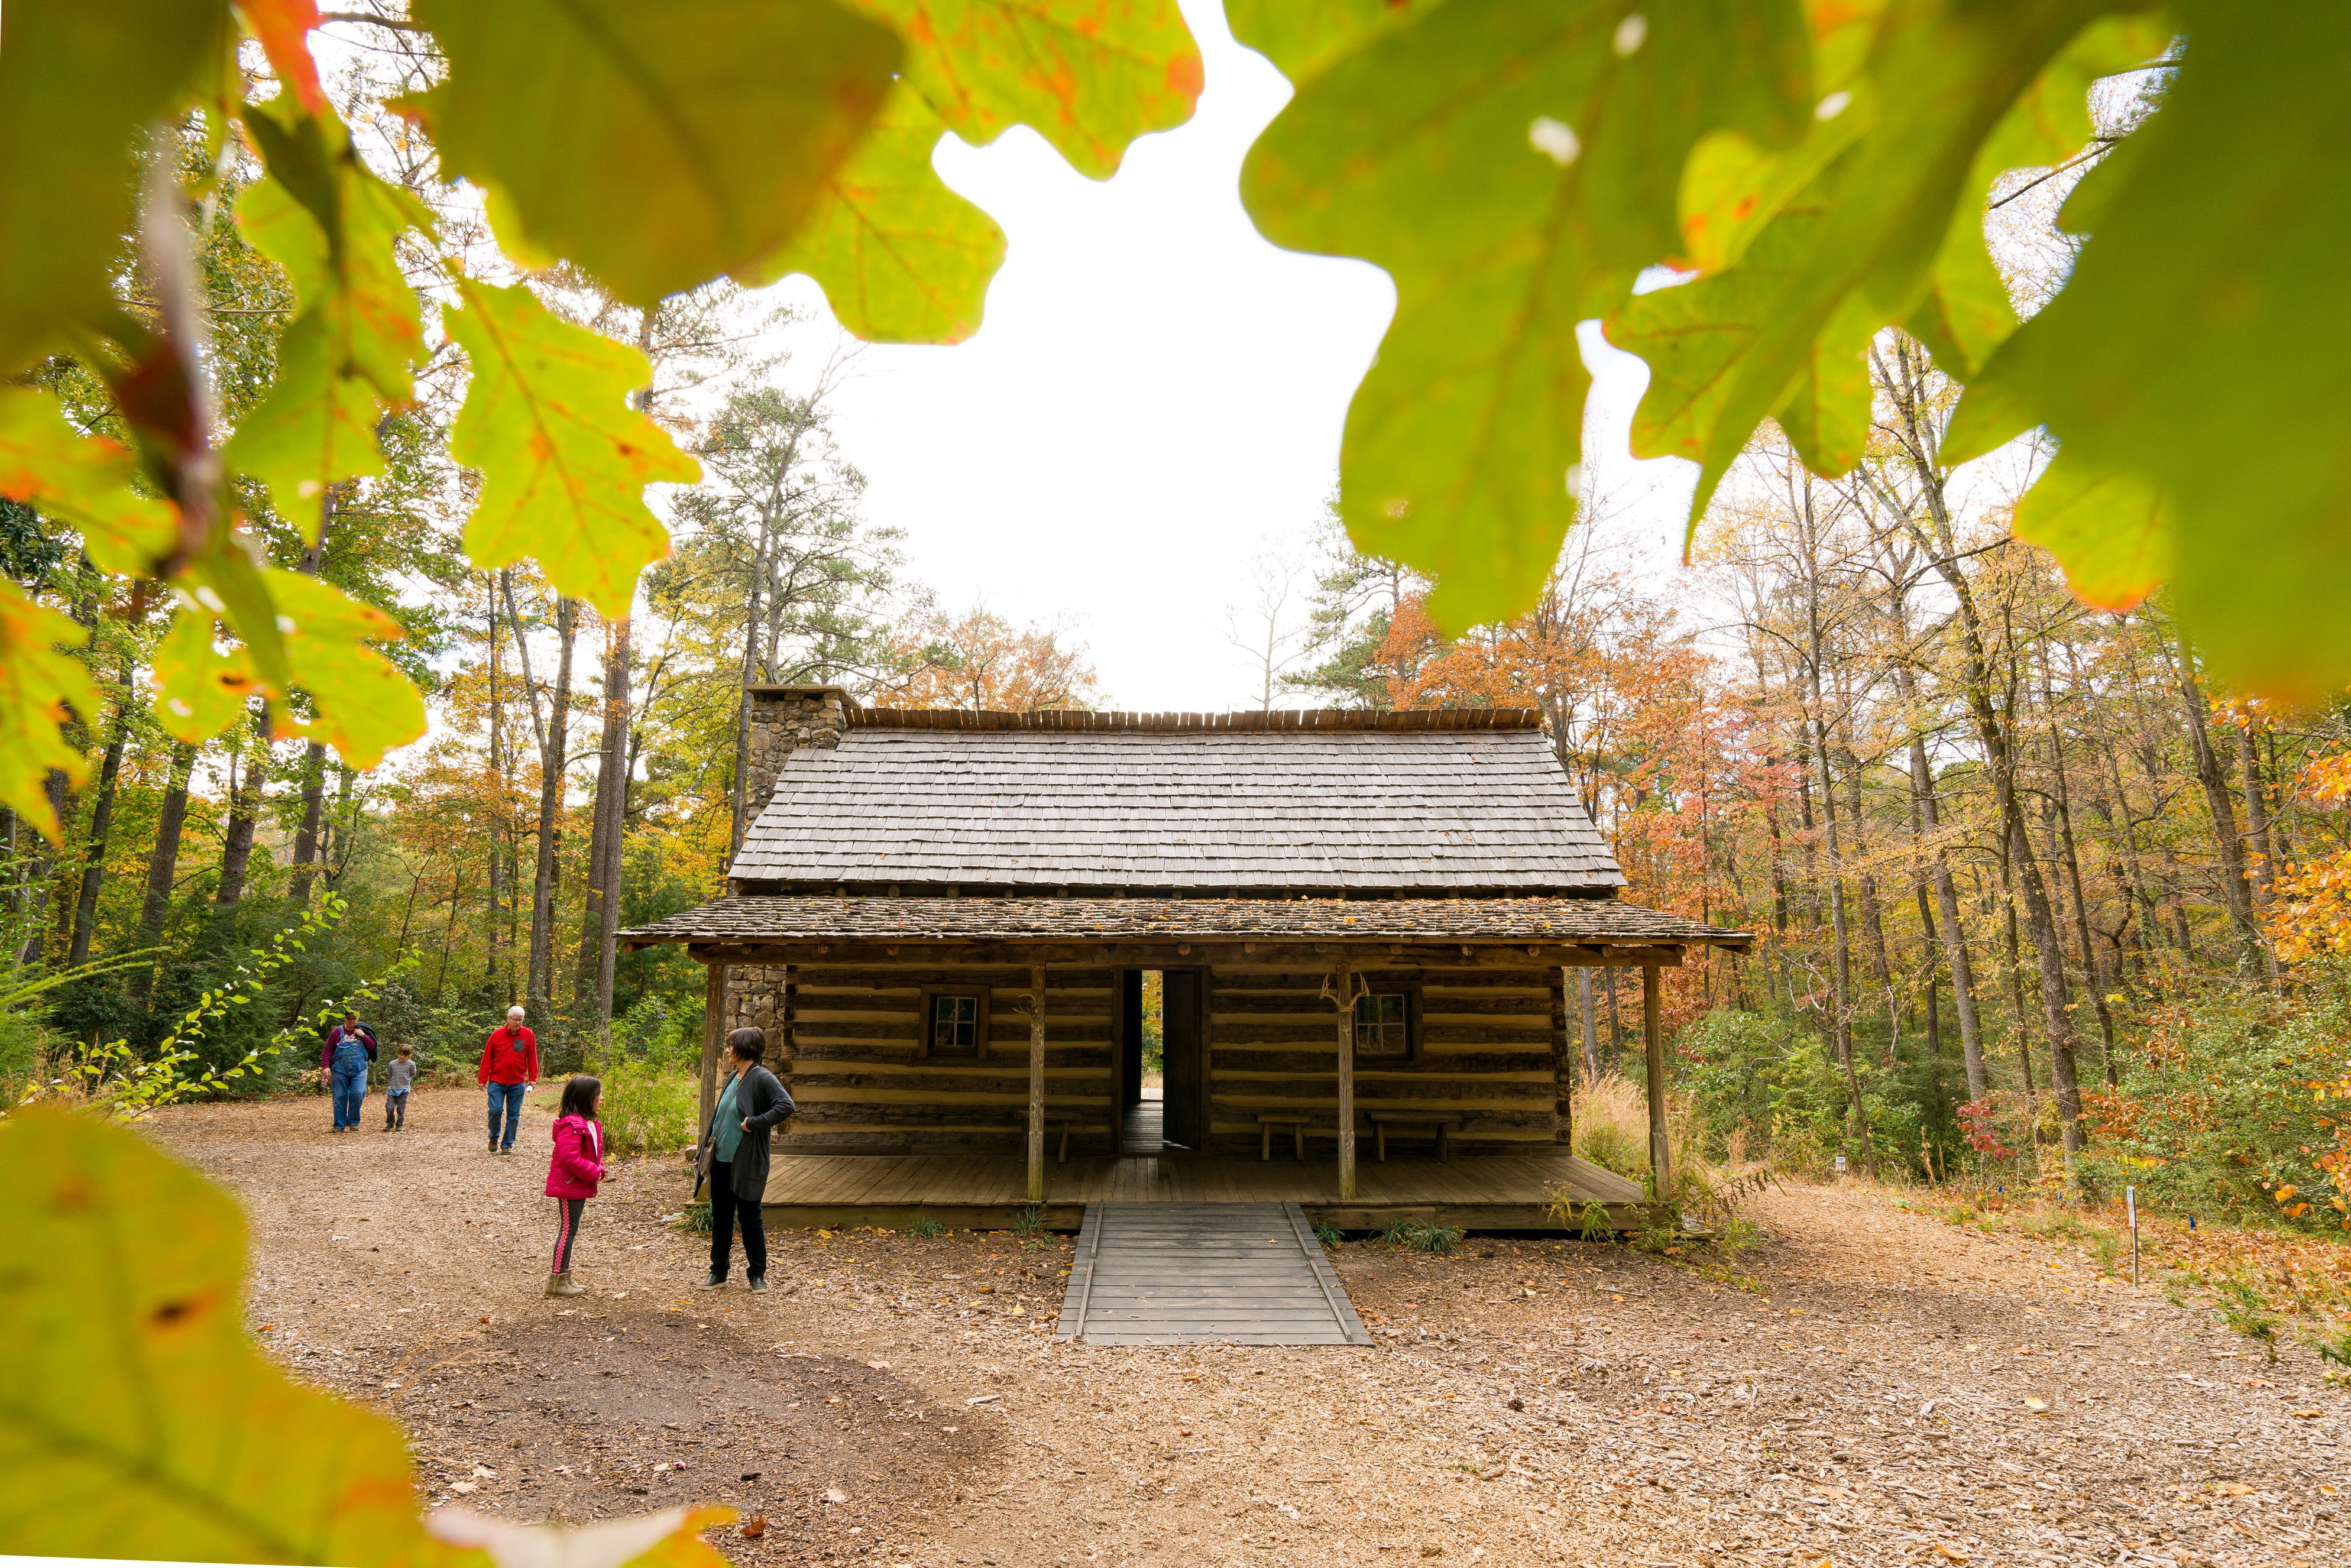 Log cabin on the Atlanta History Center grounds during autumn